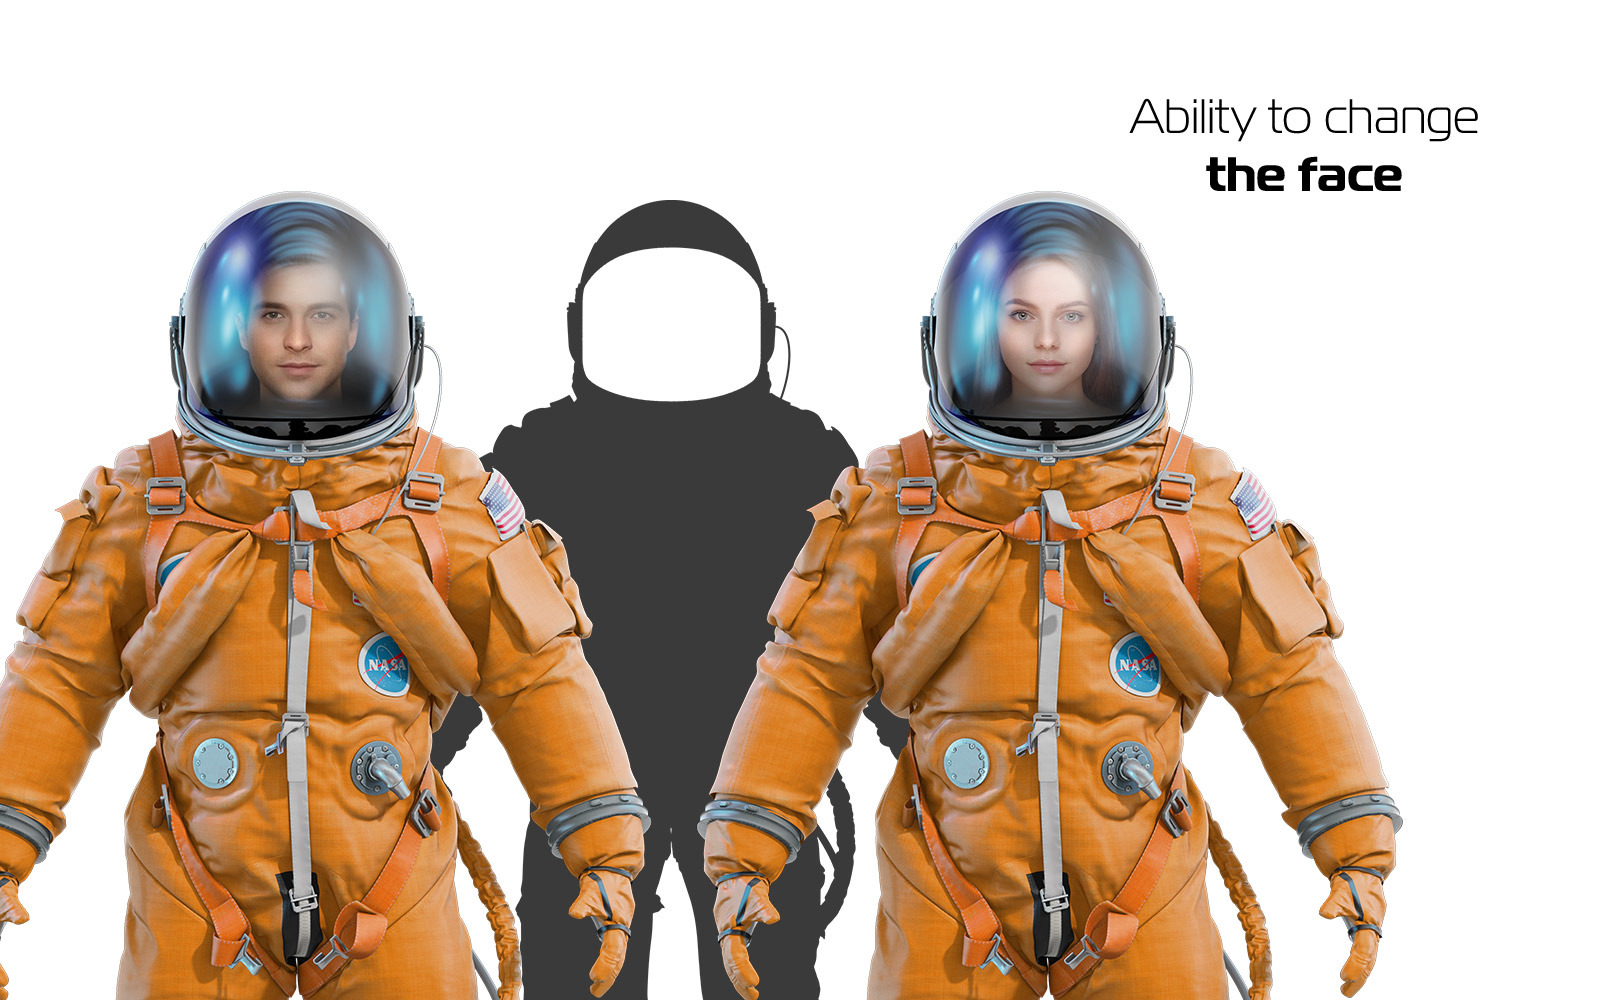 PSD Mockup 3D model NASA Astronaut #44